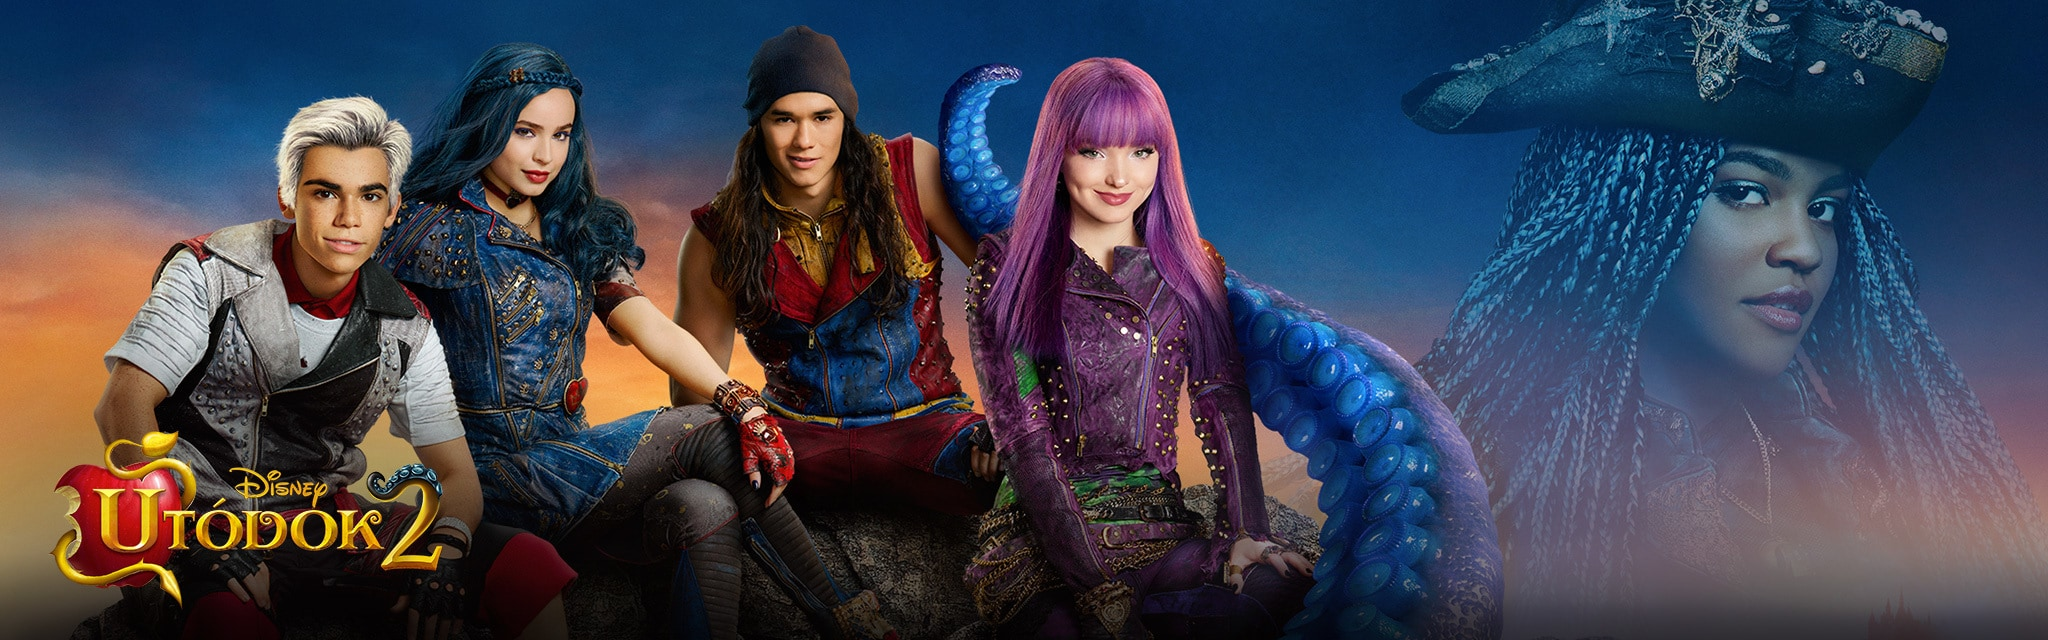 FW Hero - Descendants 2